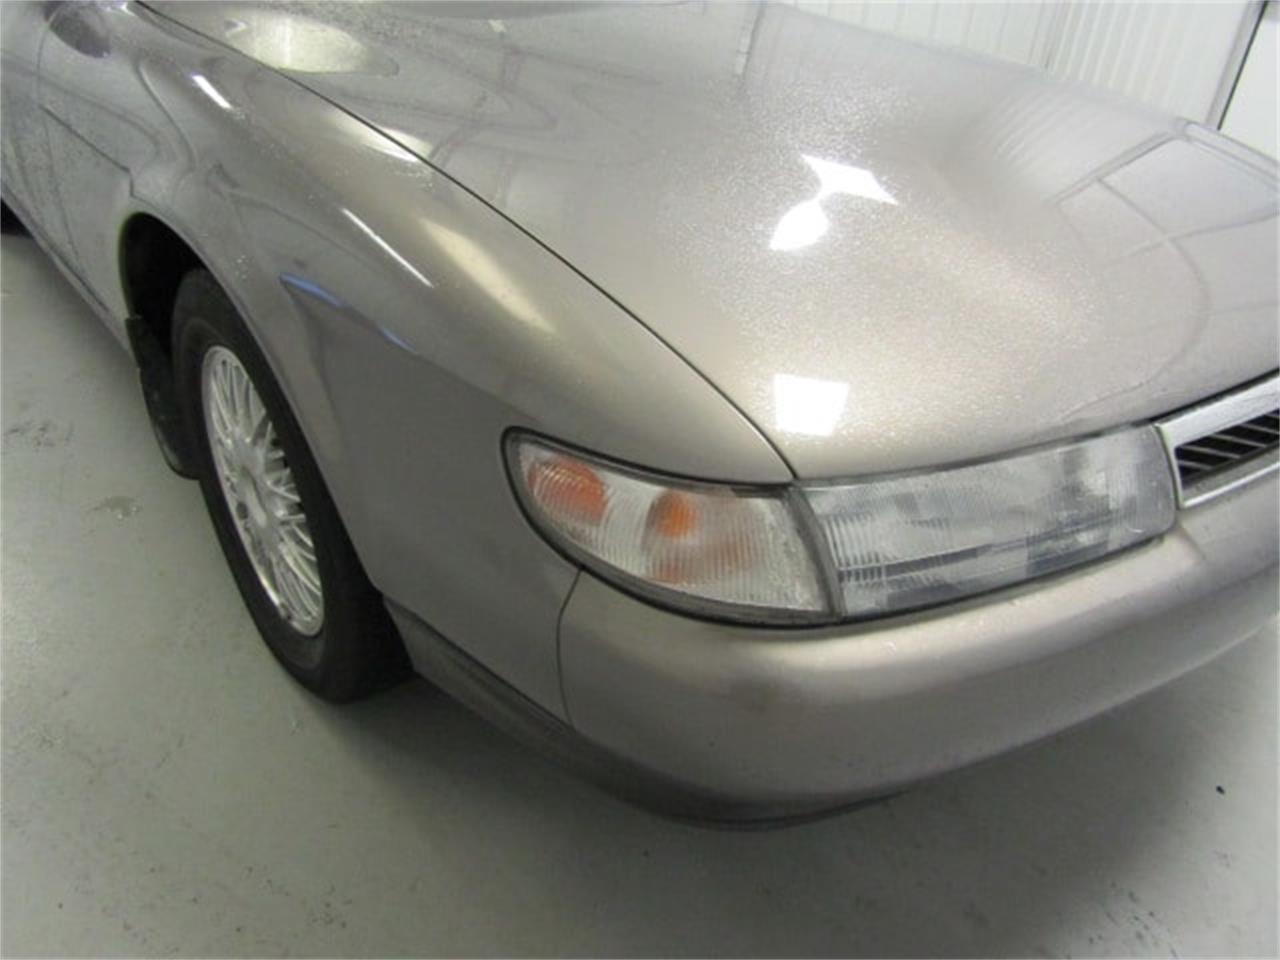 Large Picture of '92 Eunos Cosmo located in Virginia - $16,900.00 Offered by Duncan Imports & Classic Cars - LVD1